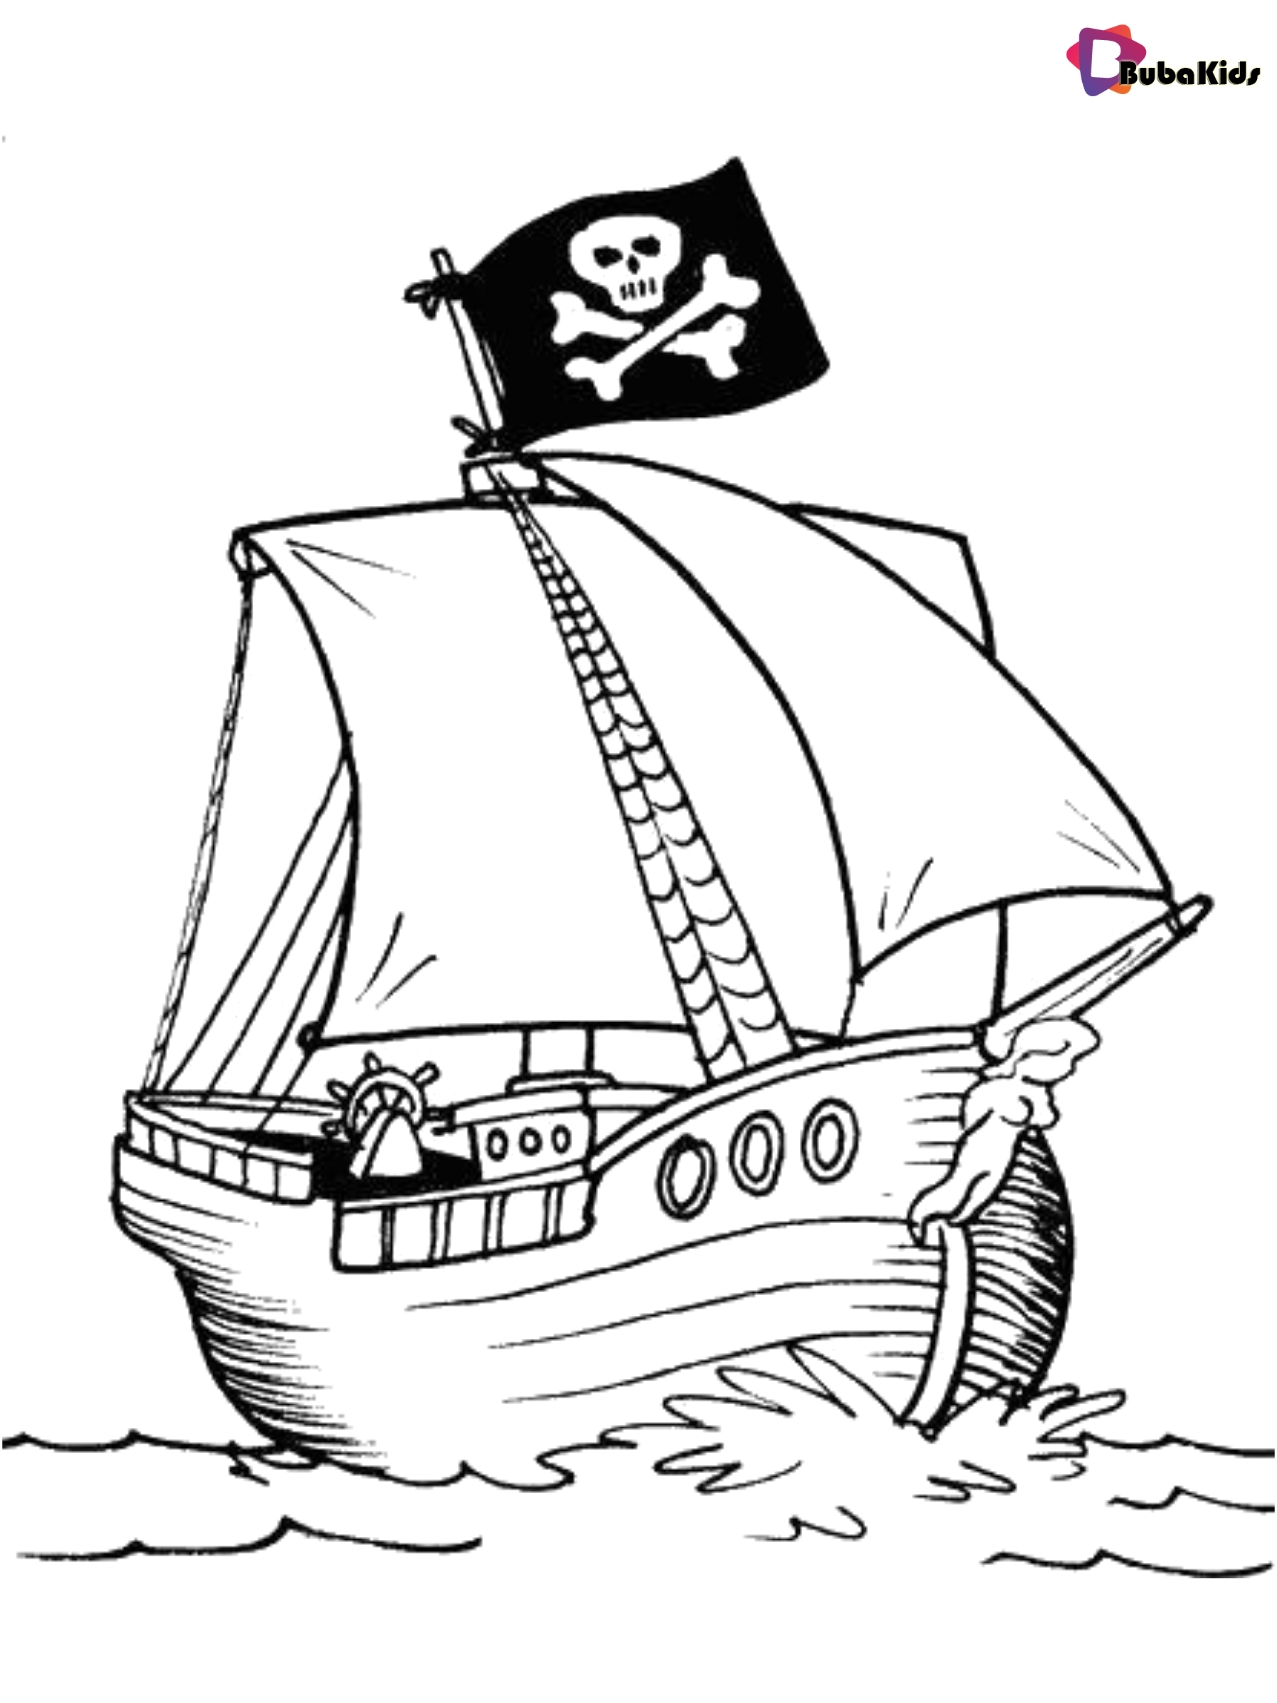 coloring ship pictures coloring picture pirate ship free printable bubakidscom coloring ship pictures